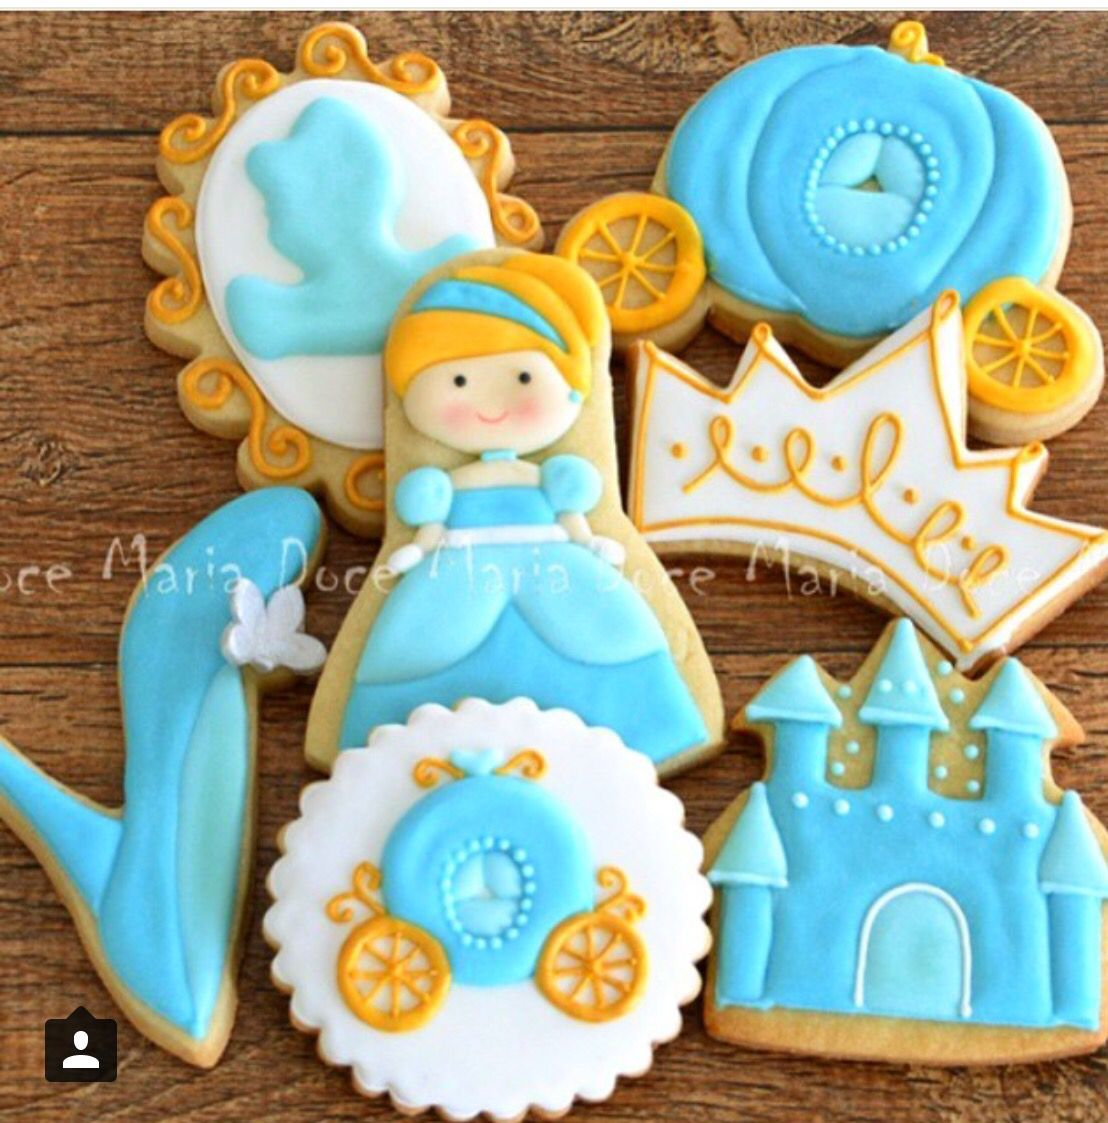 Galletas Decoradas De Princesas Cinderella Cookies Cookies Galletas Decoradas